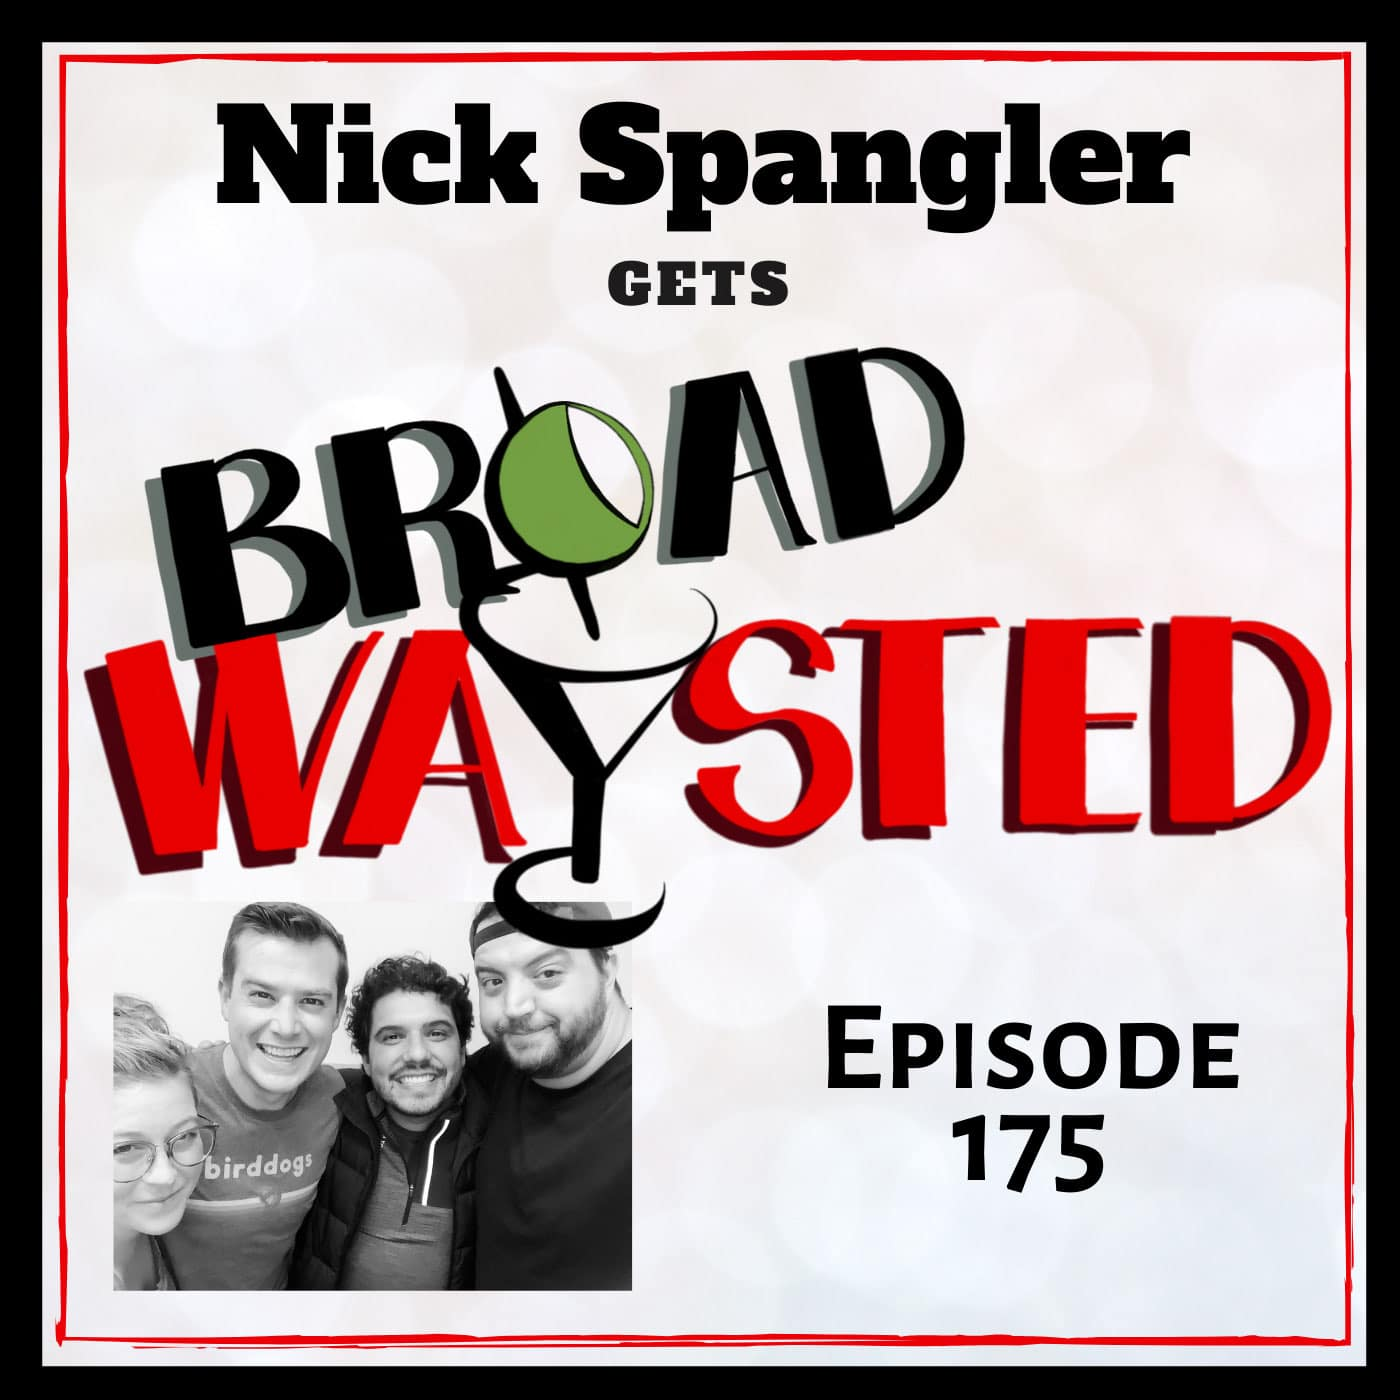 Broadwaysted Episode 175: Nick Spangler gets Broadwaysted!